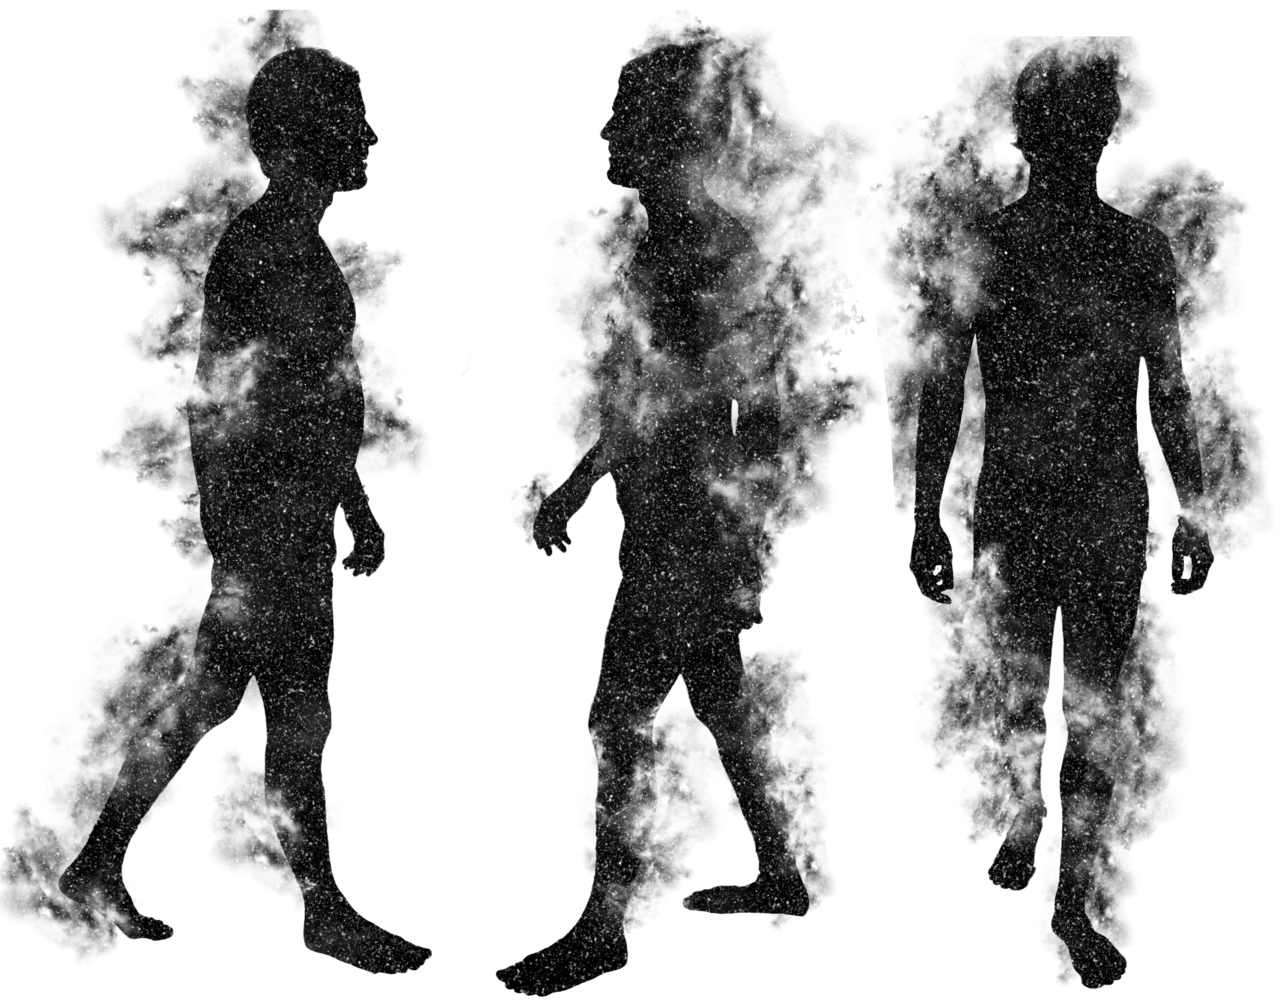 Ghost Free Png Image Png Image - Ghost, Transparent background PNG HD thumbnail